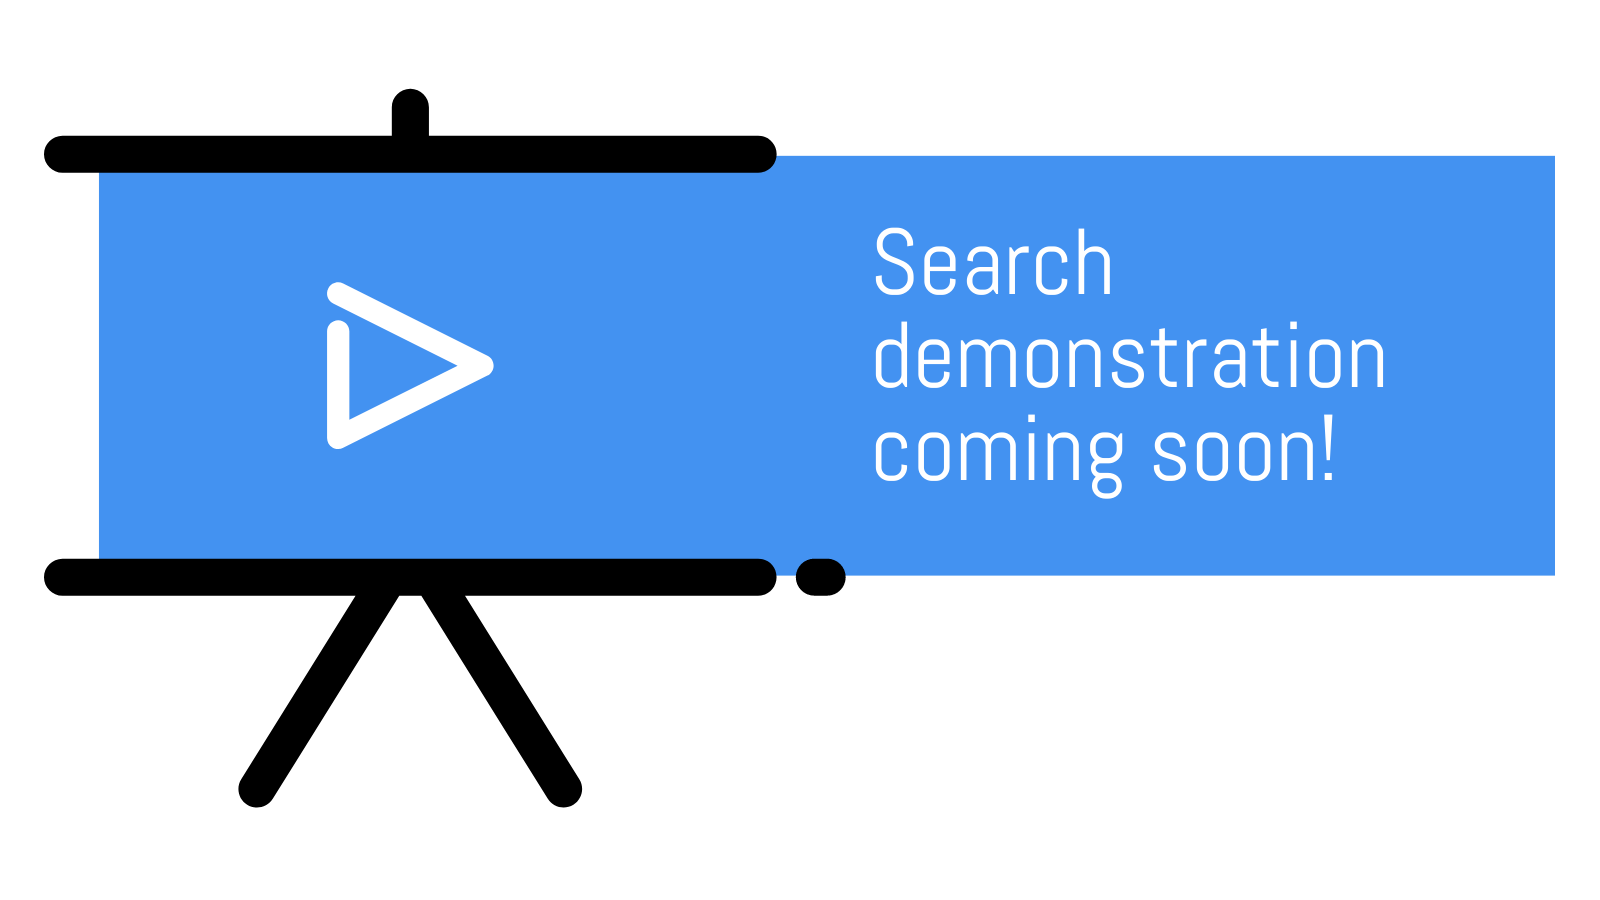 search demonstration coming soon